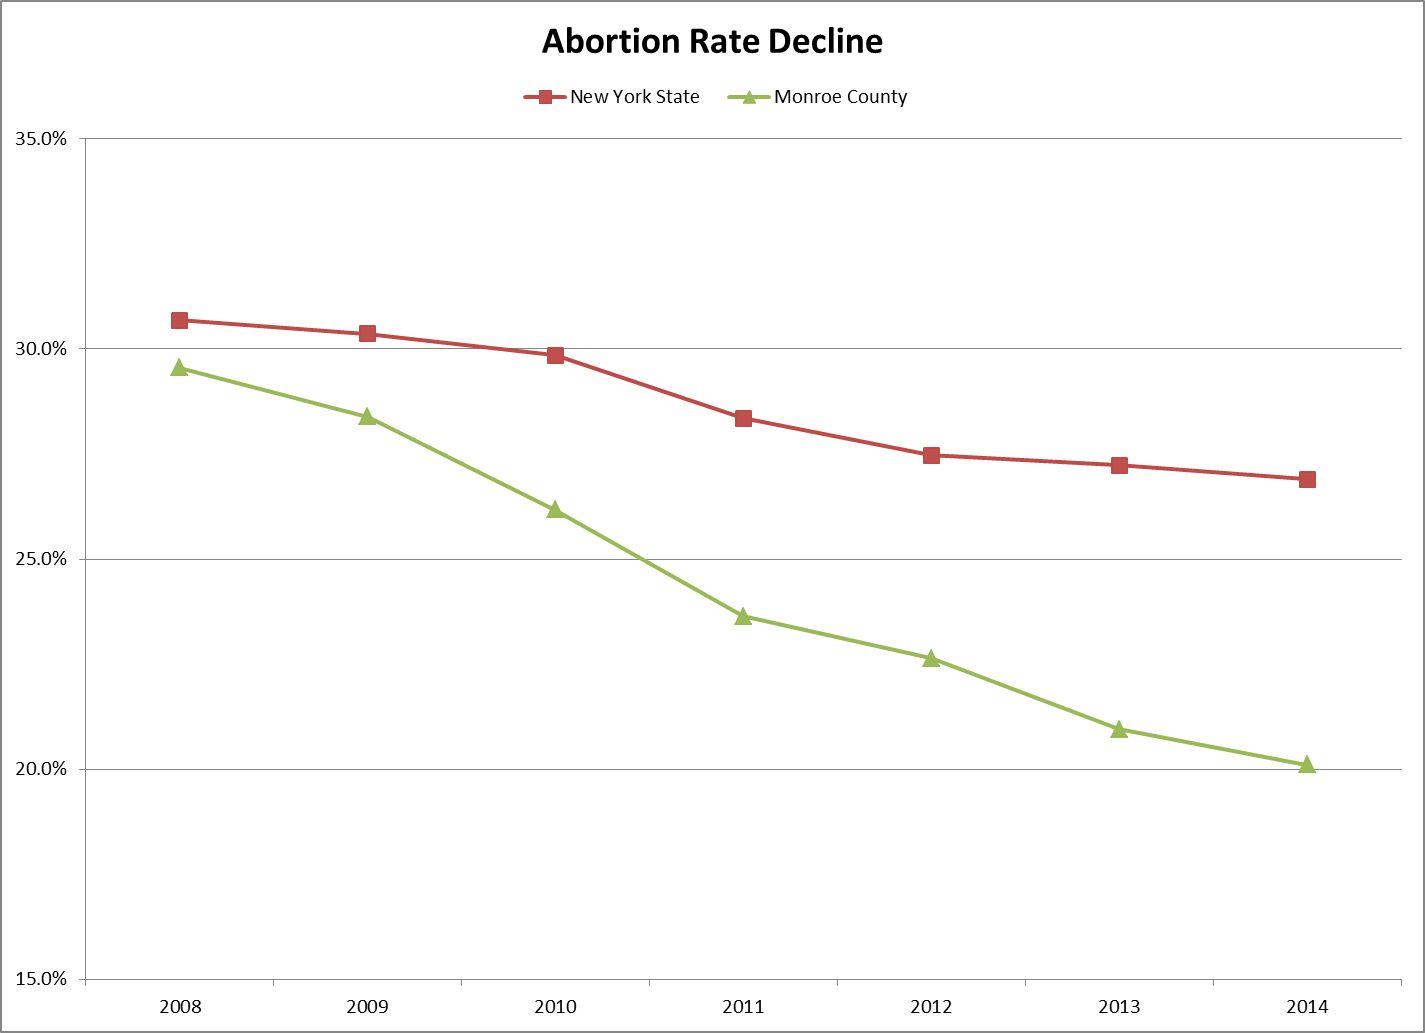 Abortion Rate Decline 2014